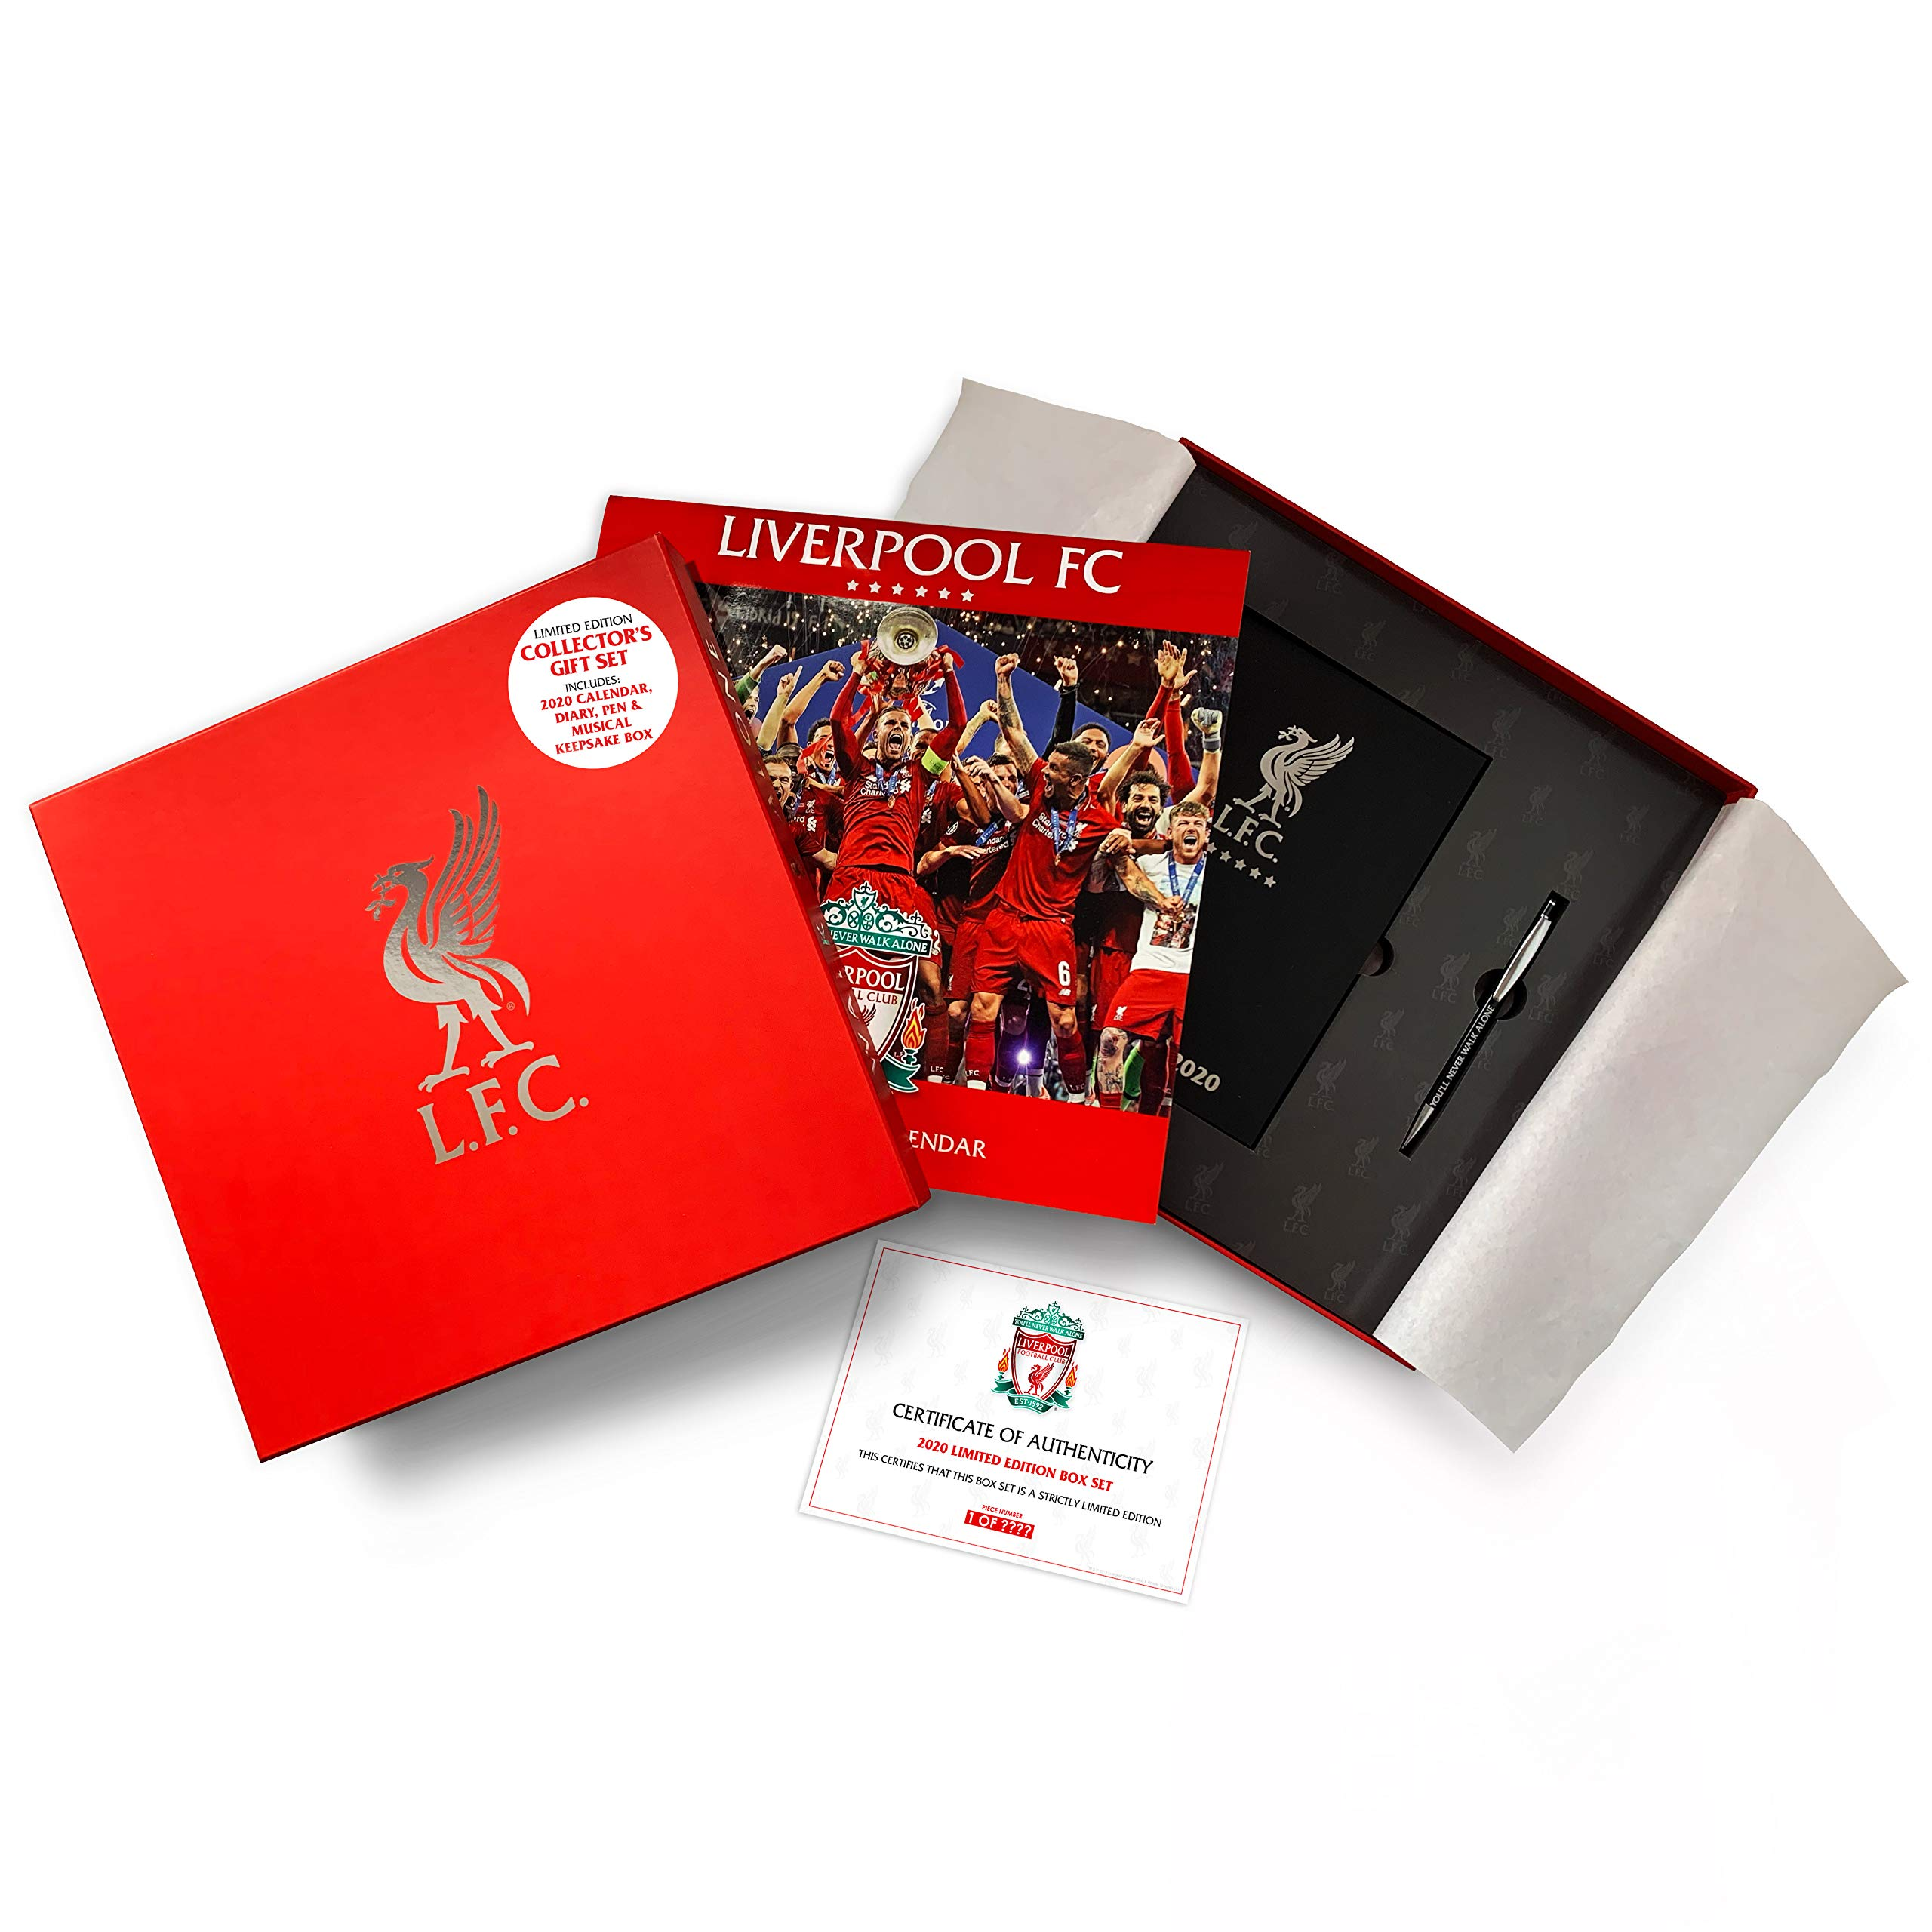 Buy Liverpool Fc 2020 Calendar Diary Pen Box Set Official Calendar Diary Pen In Musical Presentation Box Collectors Box Set Book Online At Low Prices In India Liverpool